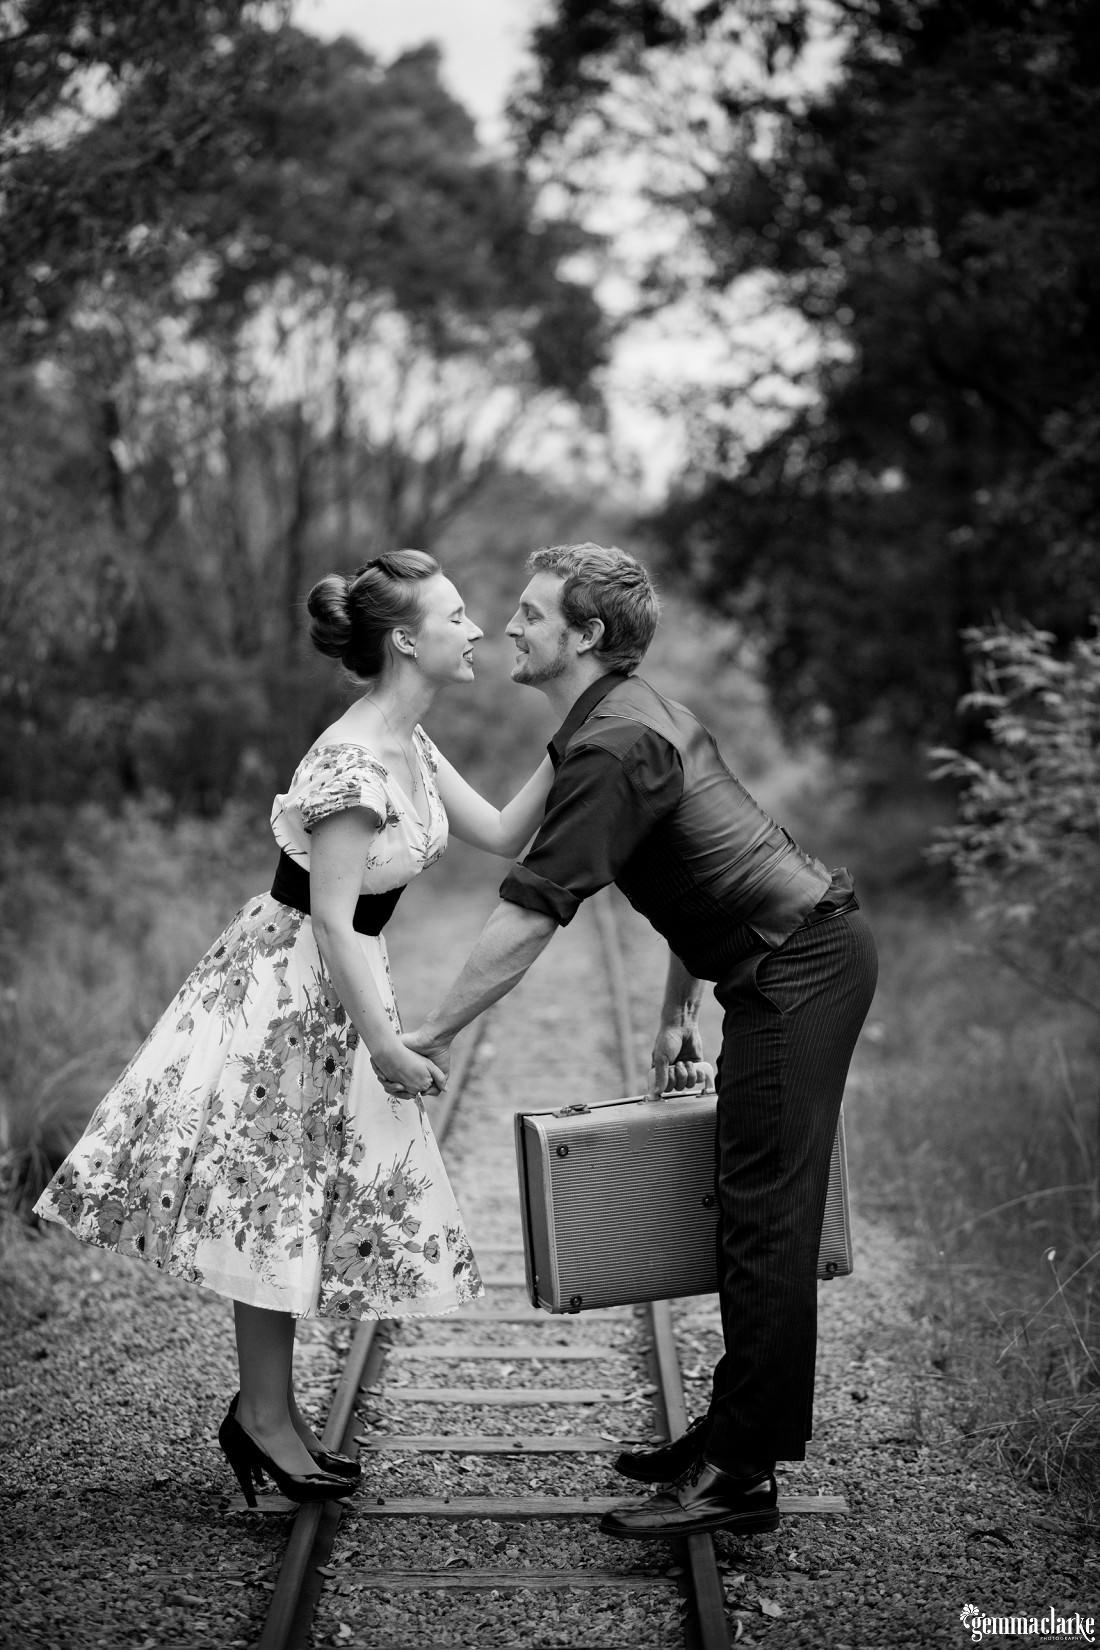 gemma-clarke-photography_bike-engagement-photos_vintage-engagement-photos_camille-and-sean_0004